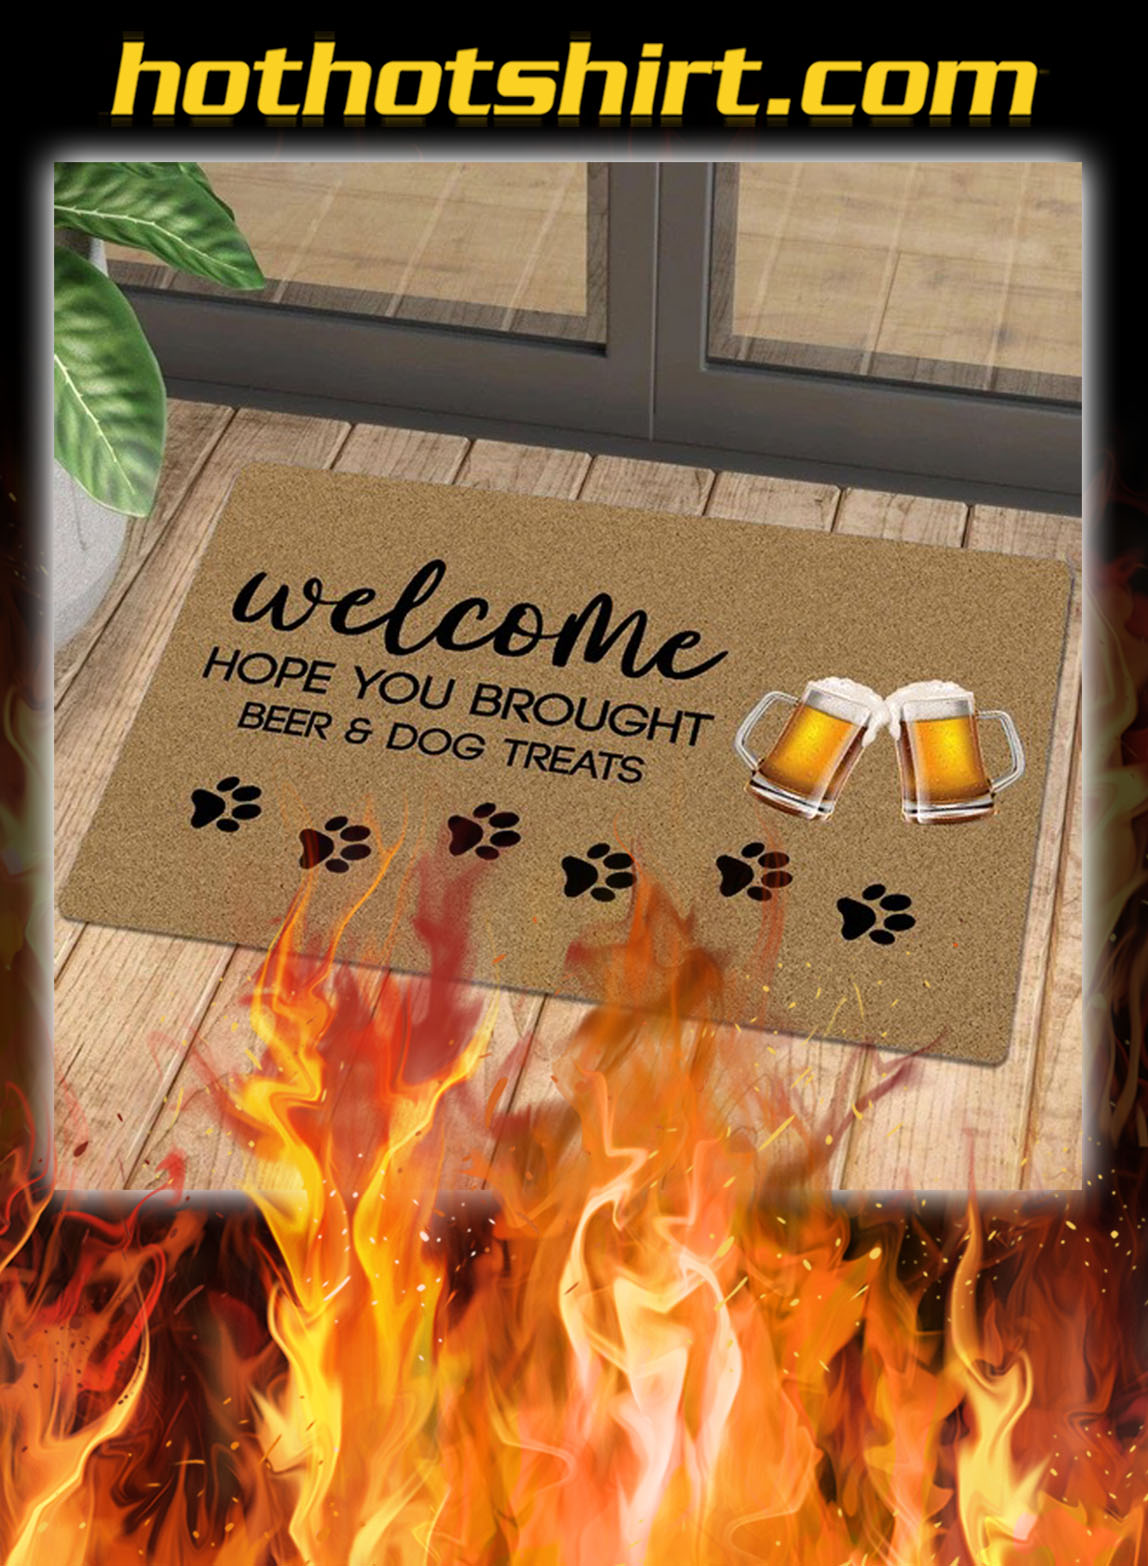 Welcome hope you brought beer and dog treats doormat - pic 1